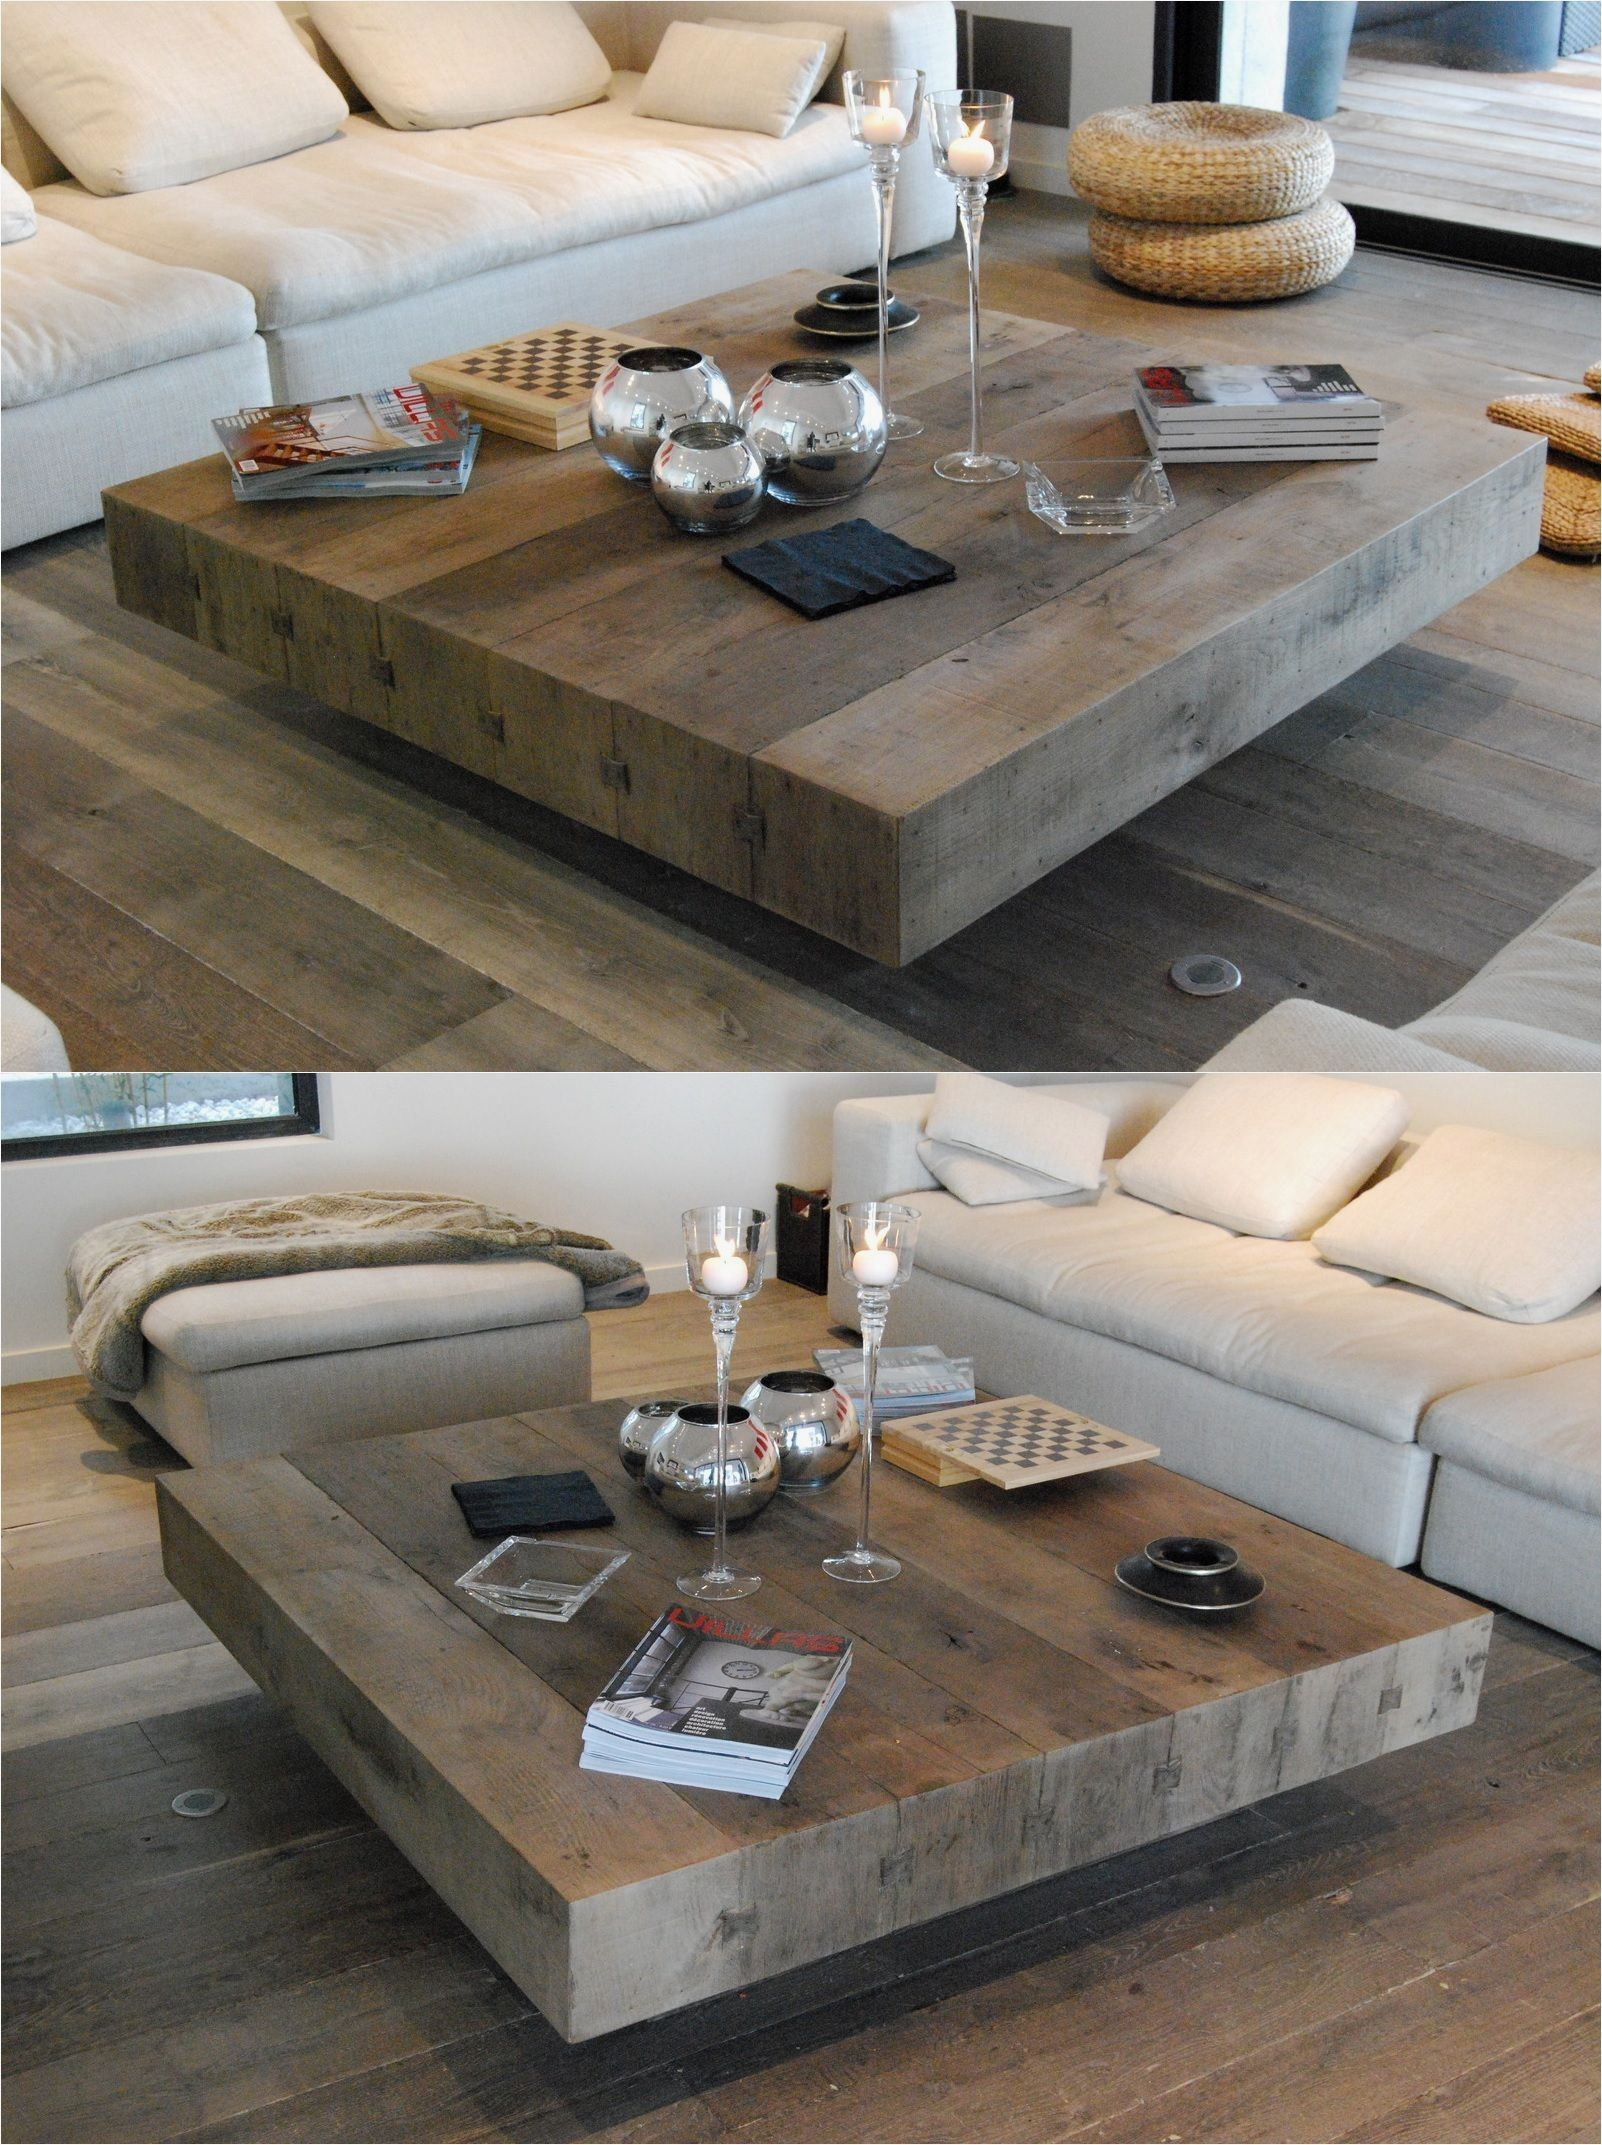 Easy Diy Coffee Table Square Wooden Coffee Table Large Square Coffee Table Coffee Table Wood [ 2145 x 1602 Pixel ]